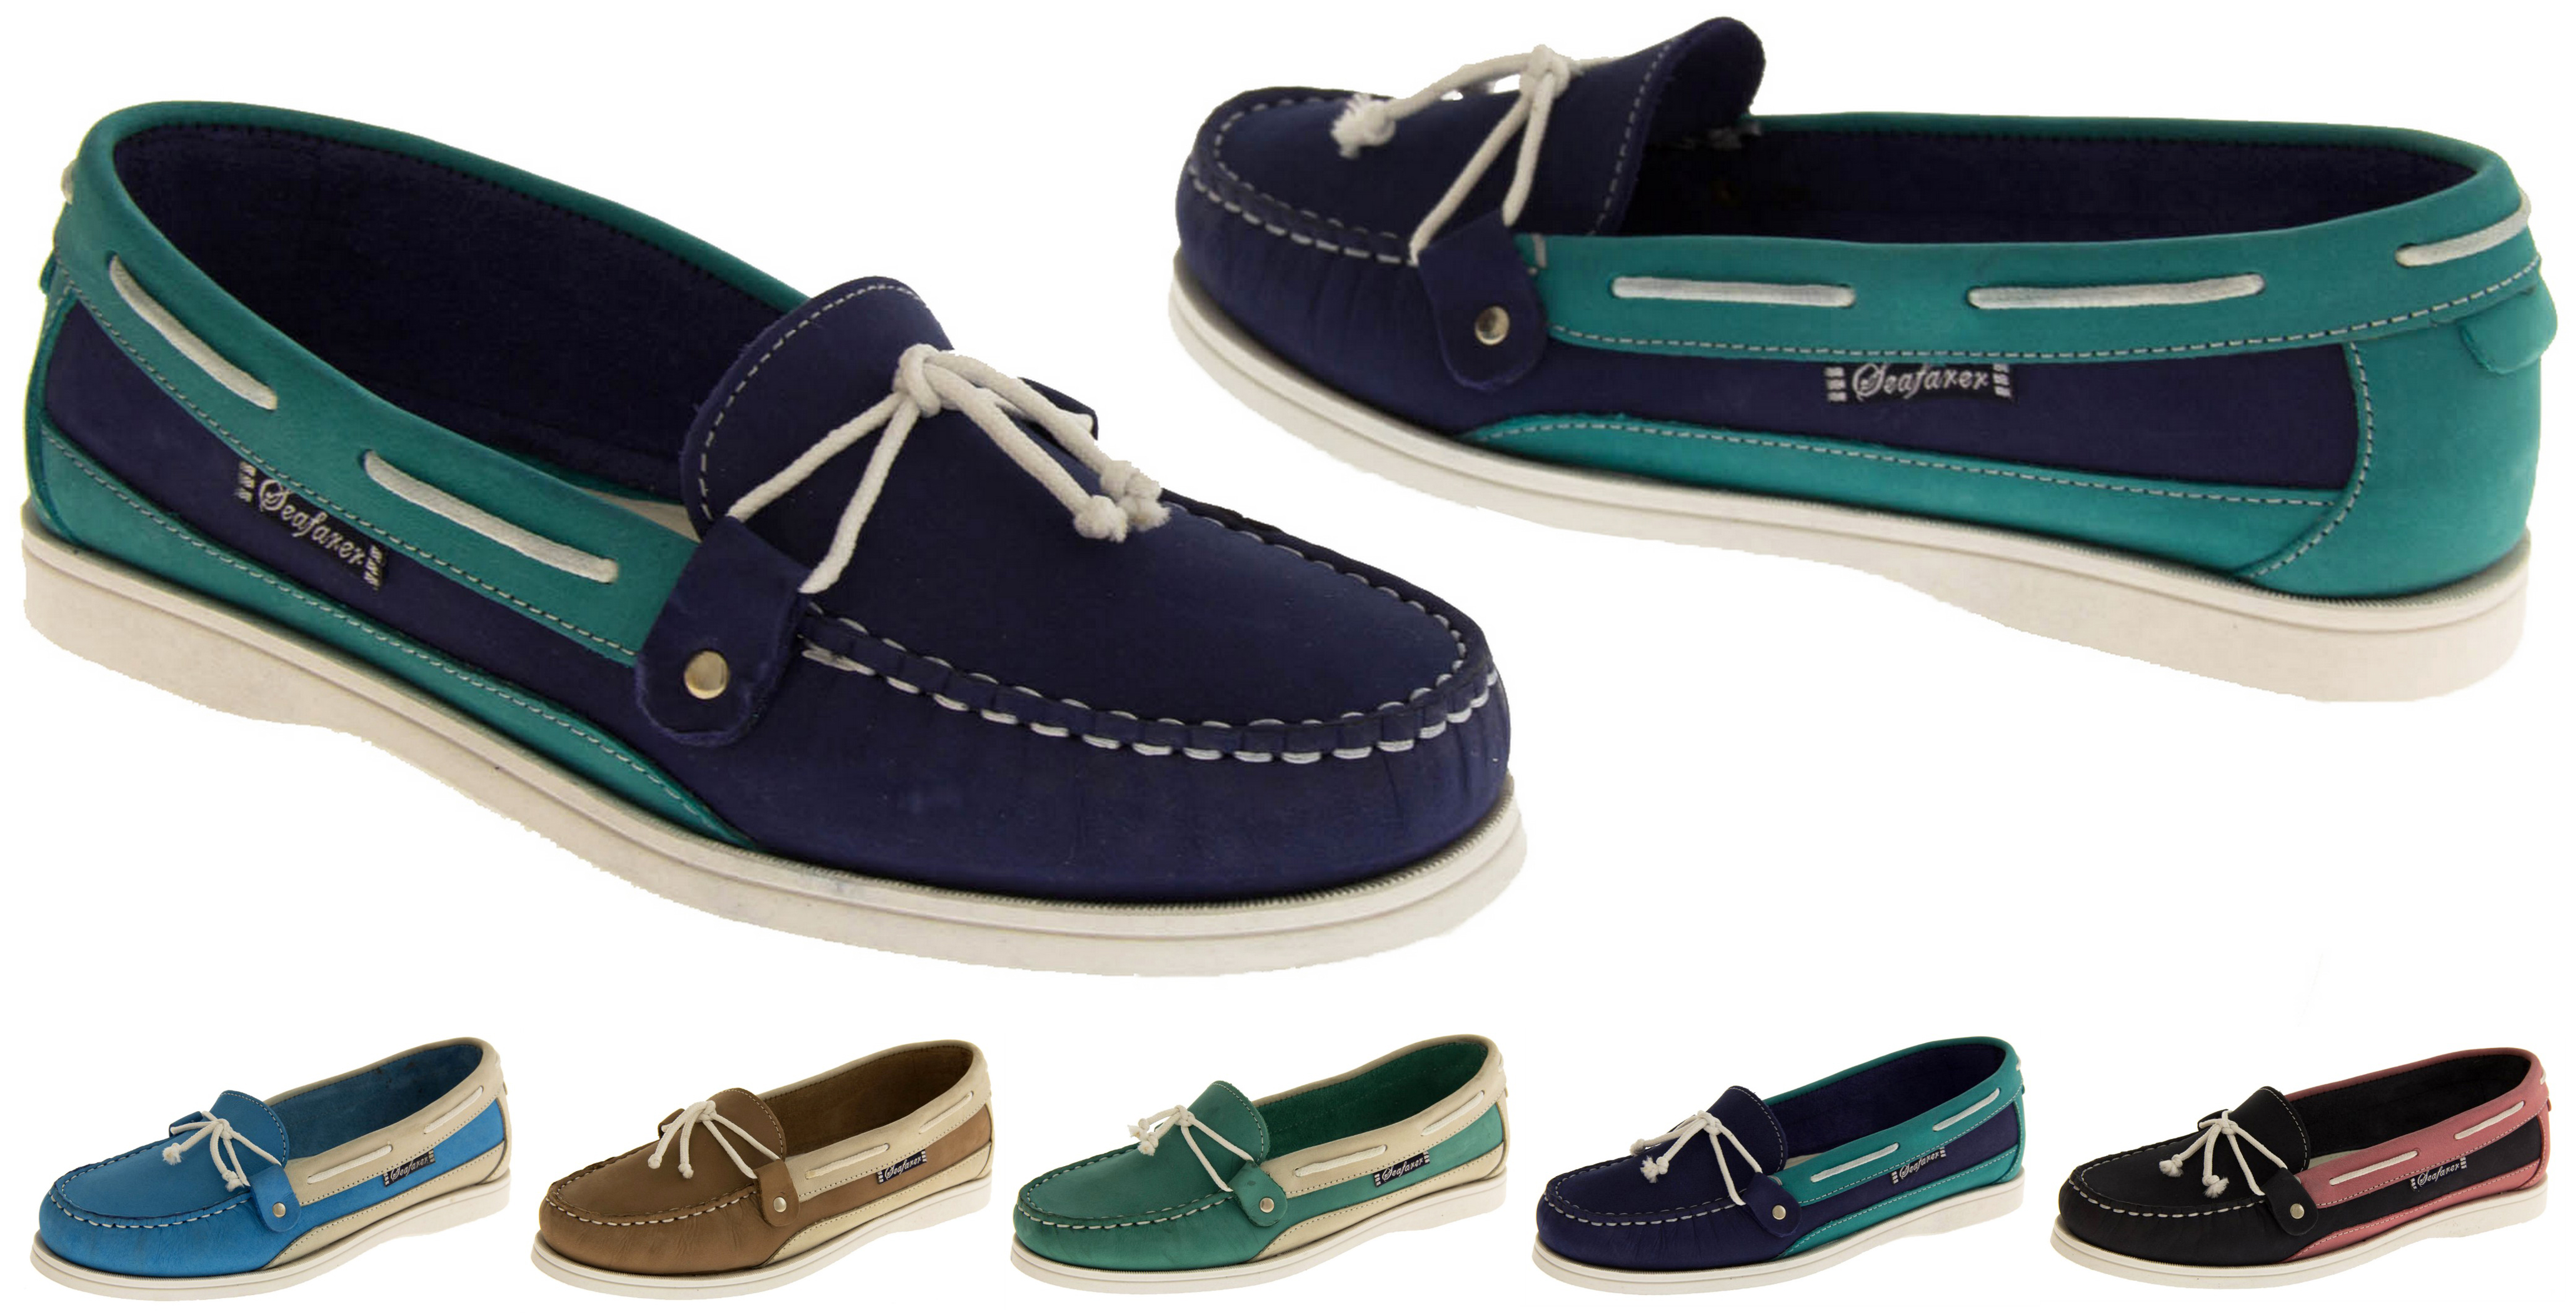 4d03f619b6 Womens Leather SEAFARER Smart Boat Formal Moccasins Sailing Deck Shoes  Loafers